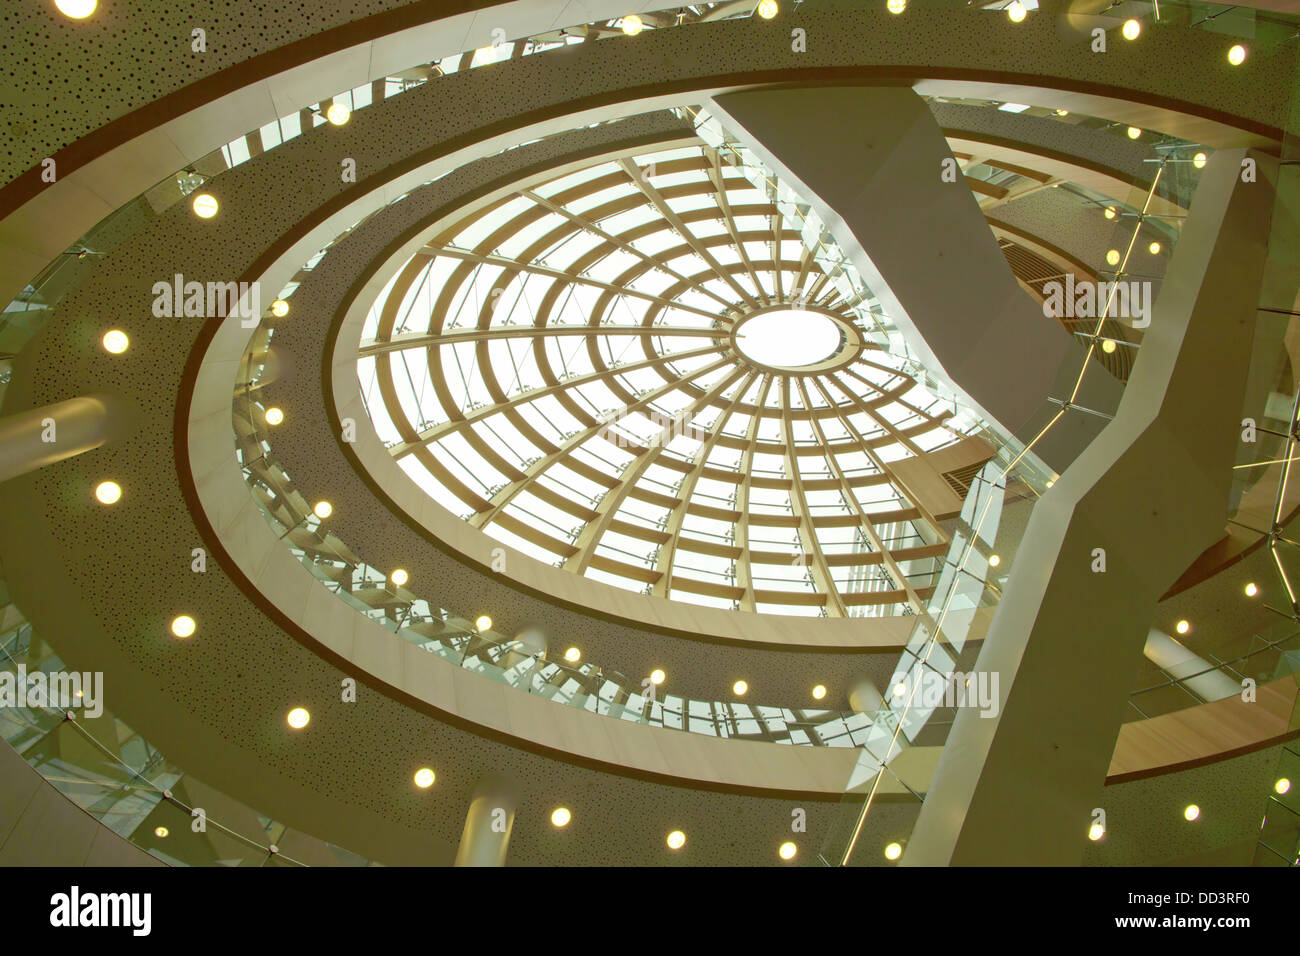 Architectural detail of modern building of Central Library in the city center of Liverpool, England. - Stock Image